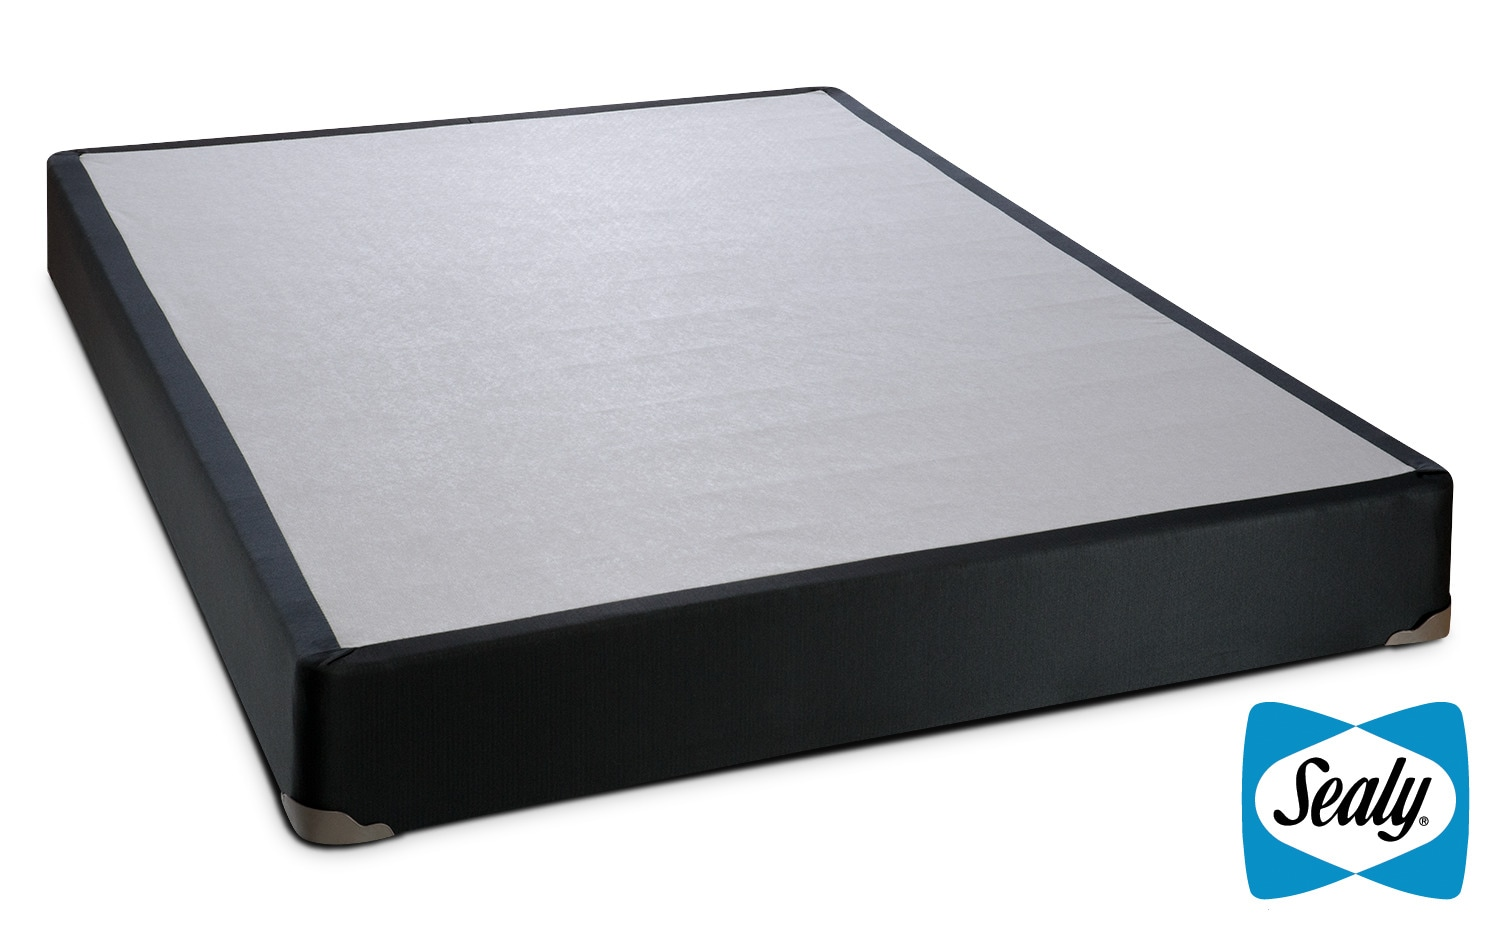 The Sealy Charcoal Luxe Boxspring Collection